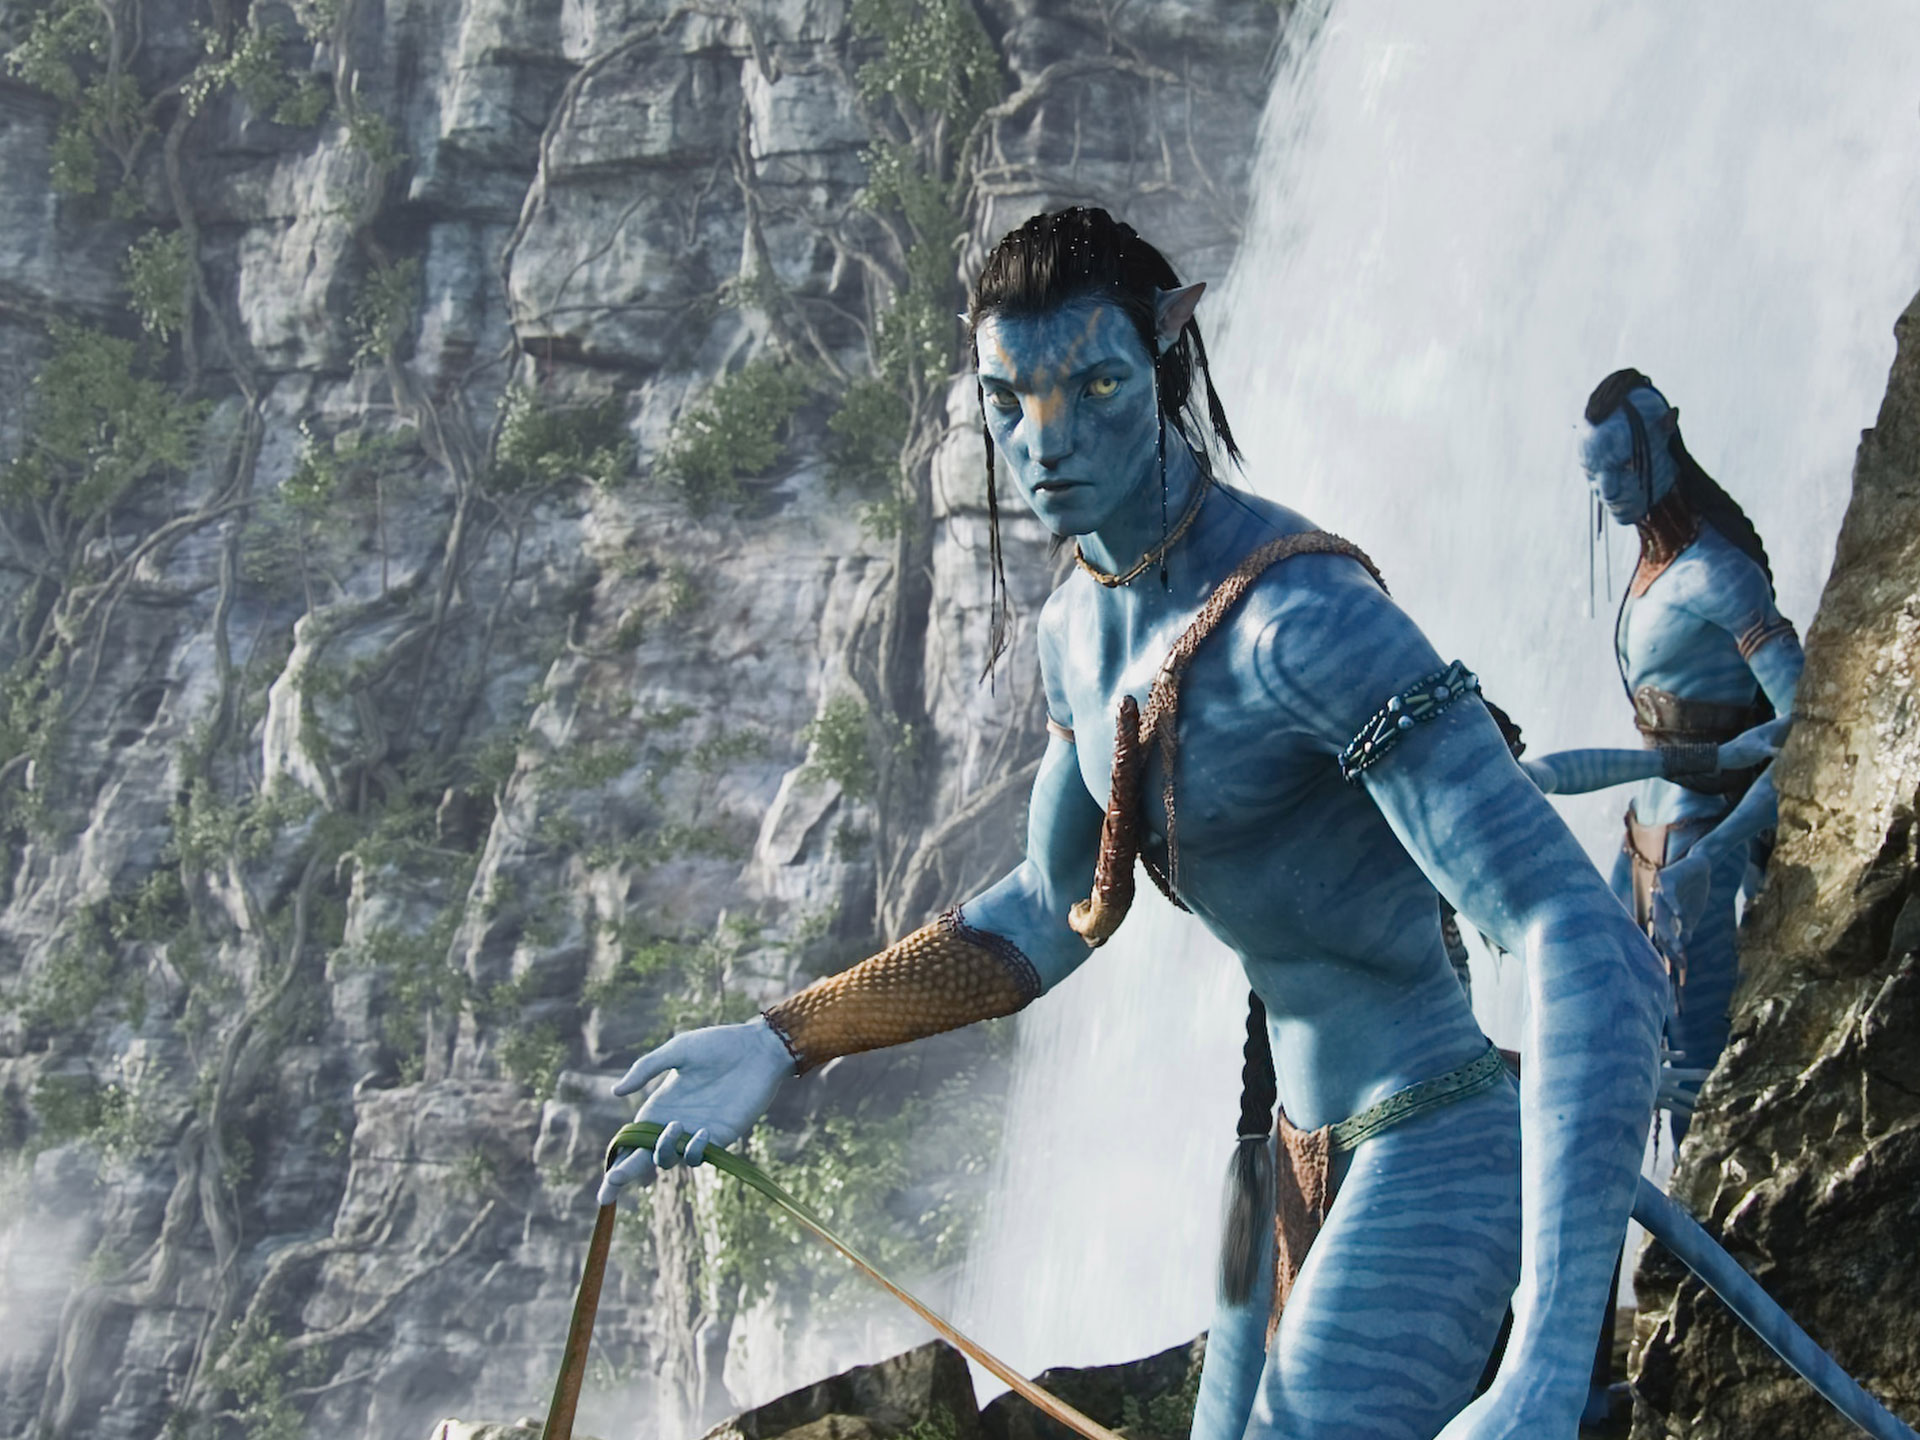 jake_sully_in_avatar_movie-normal